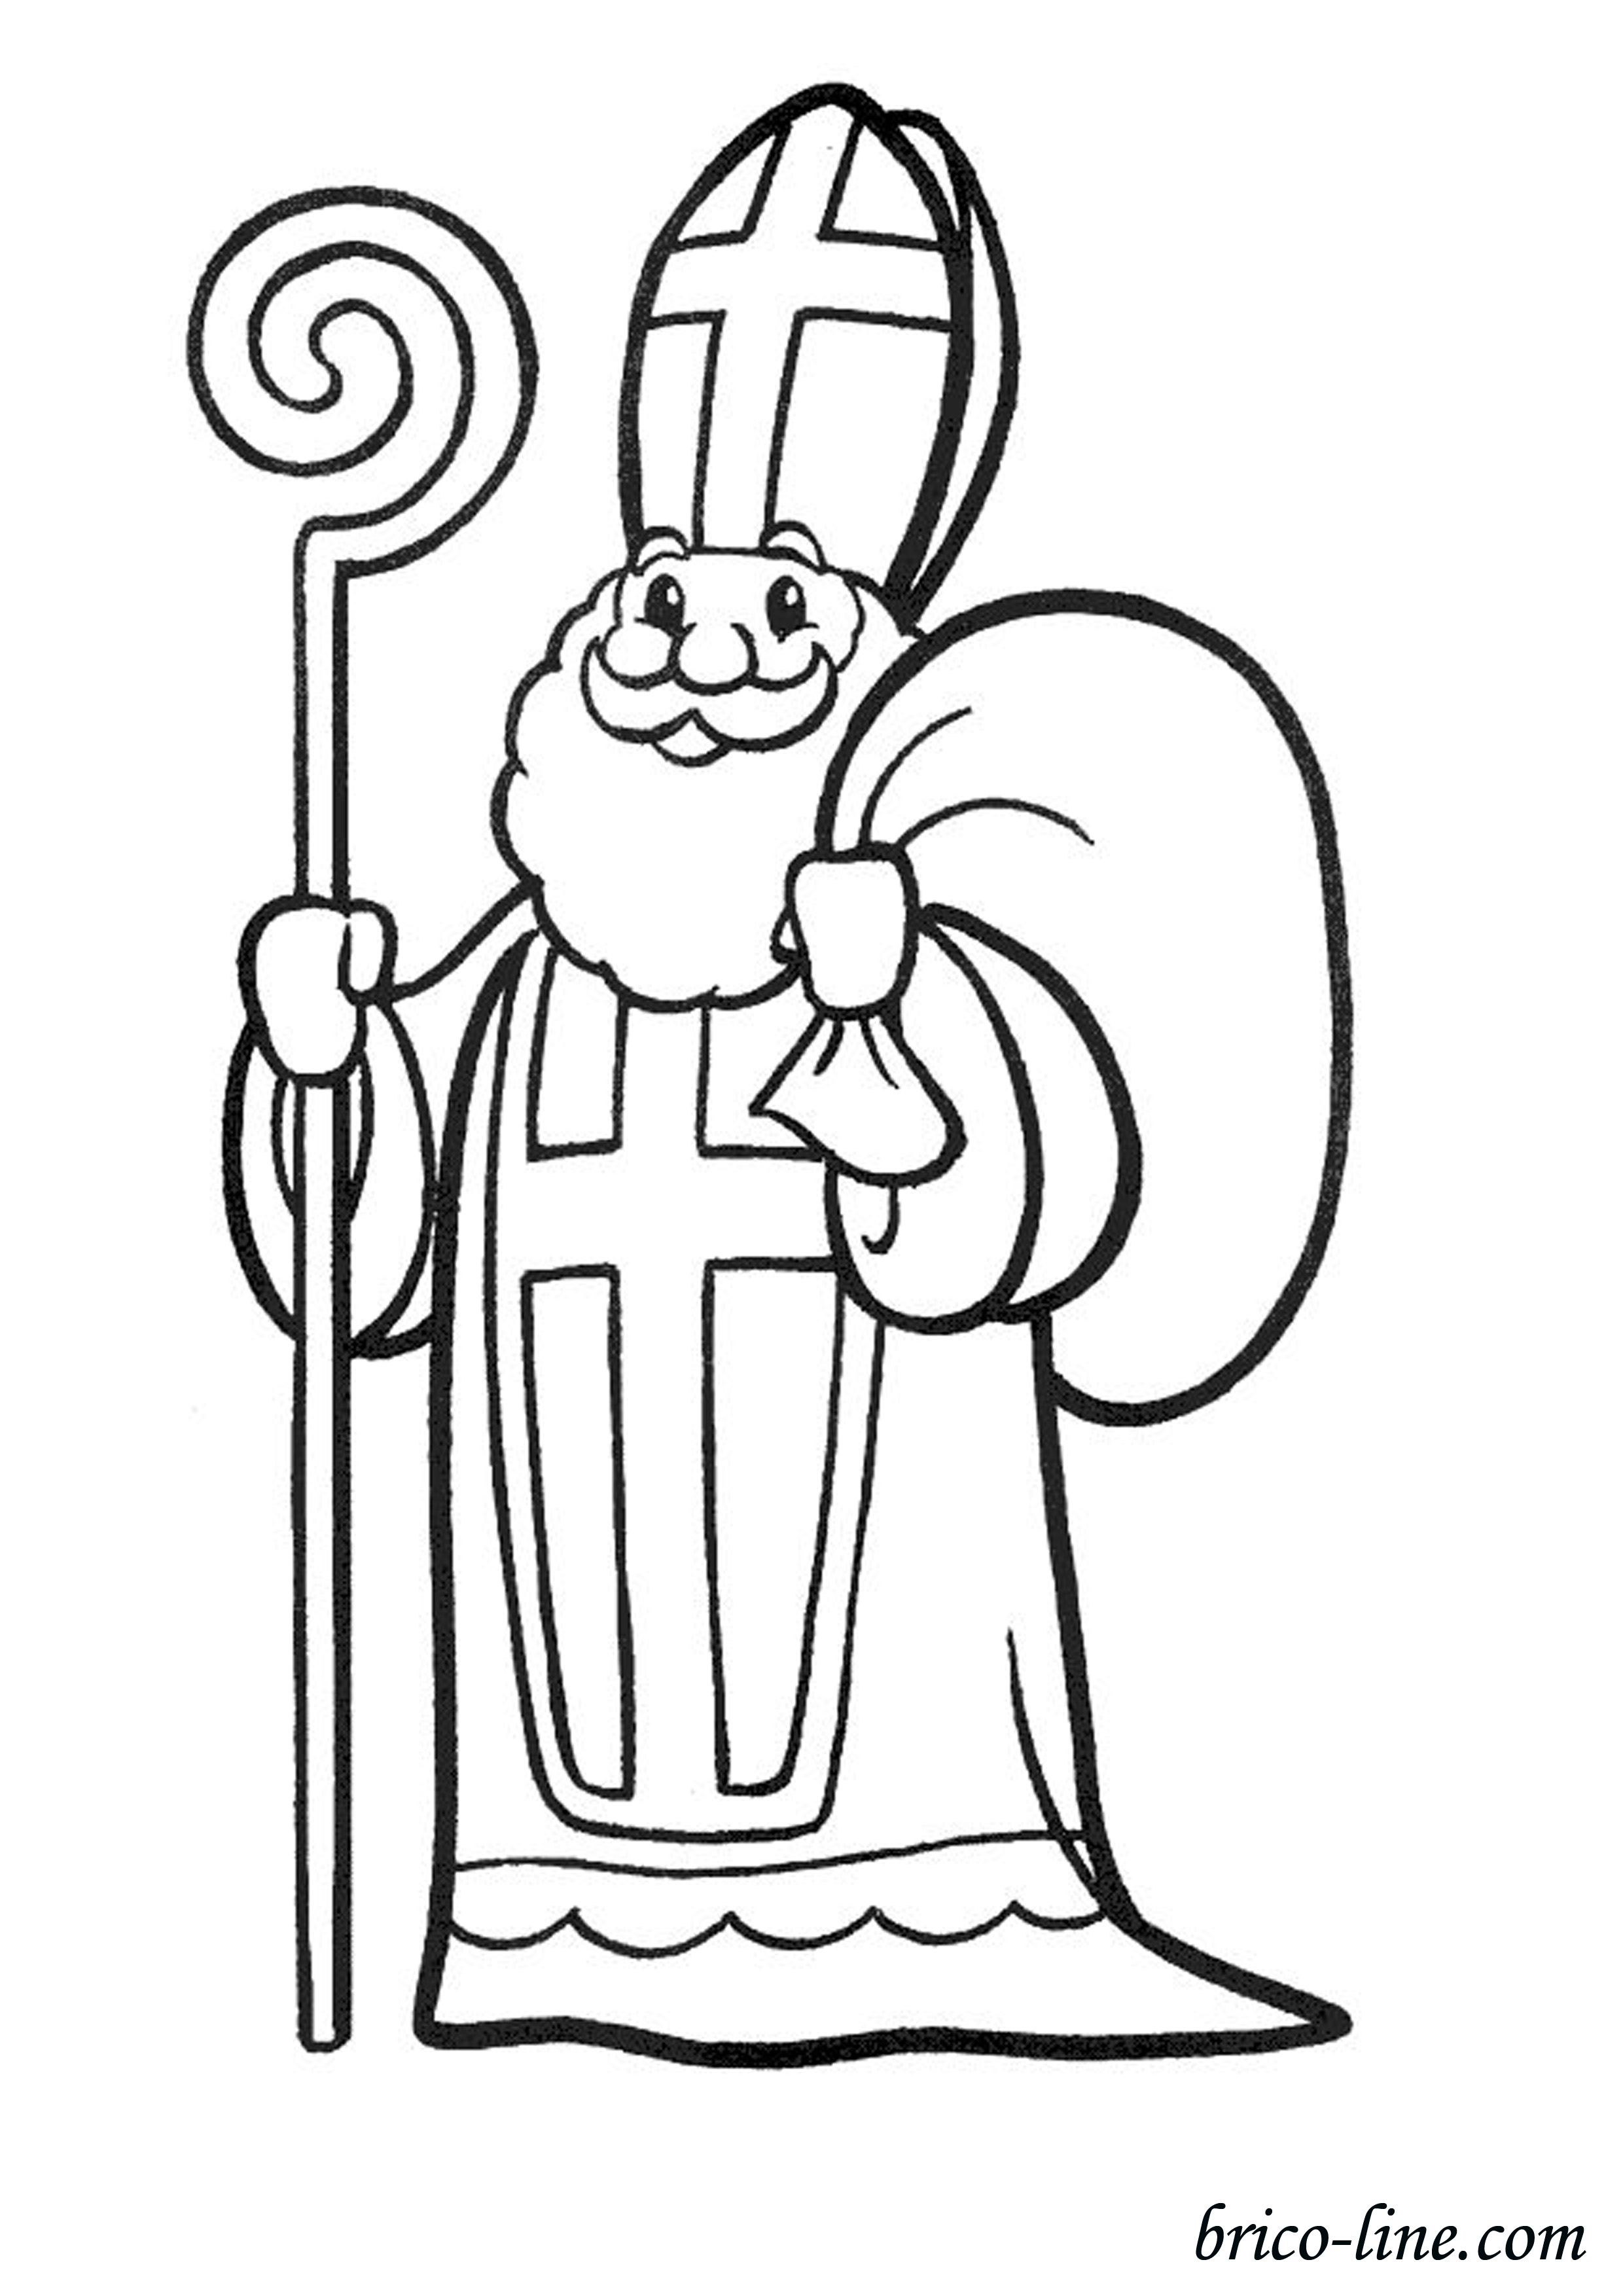 Funny free St Nicolas coloring page to print and color